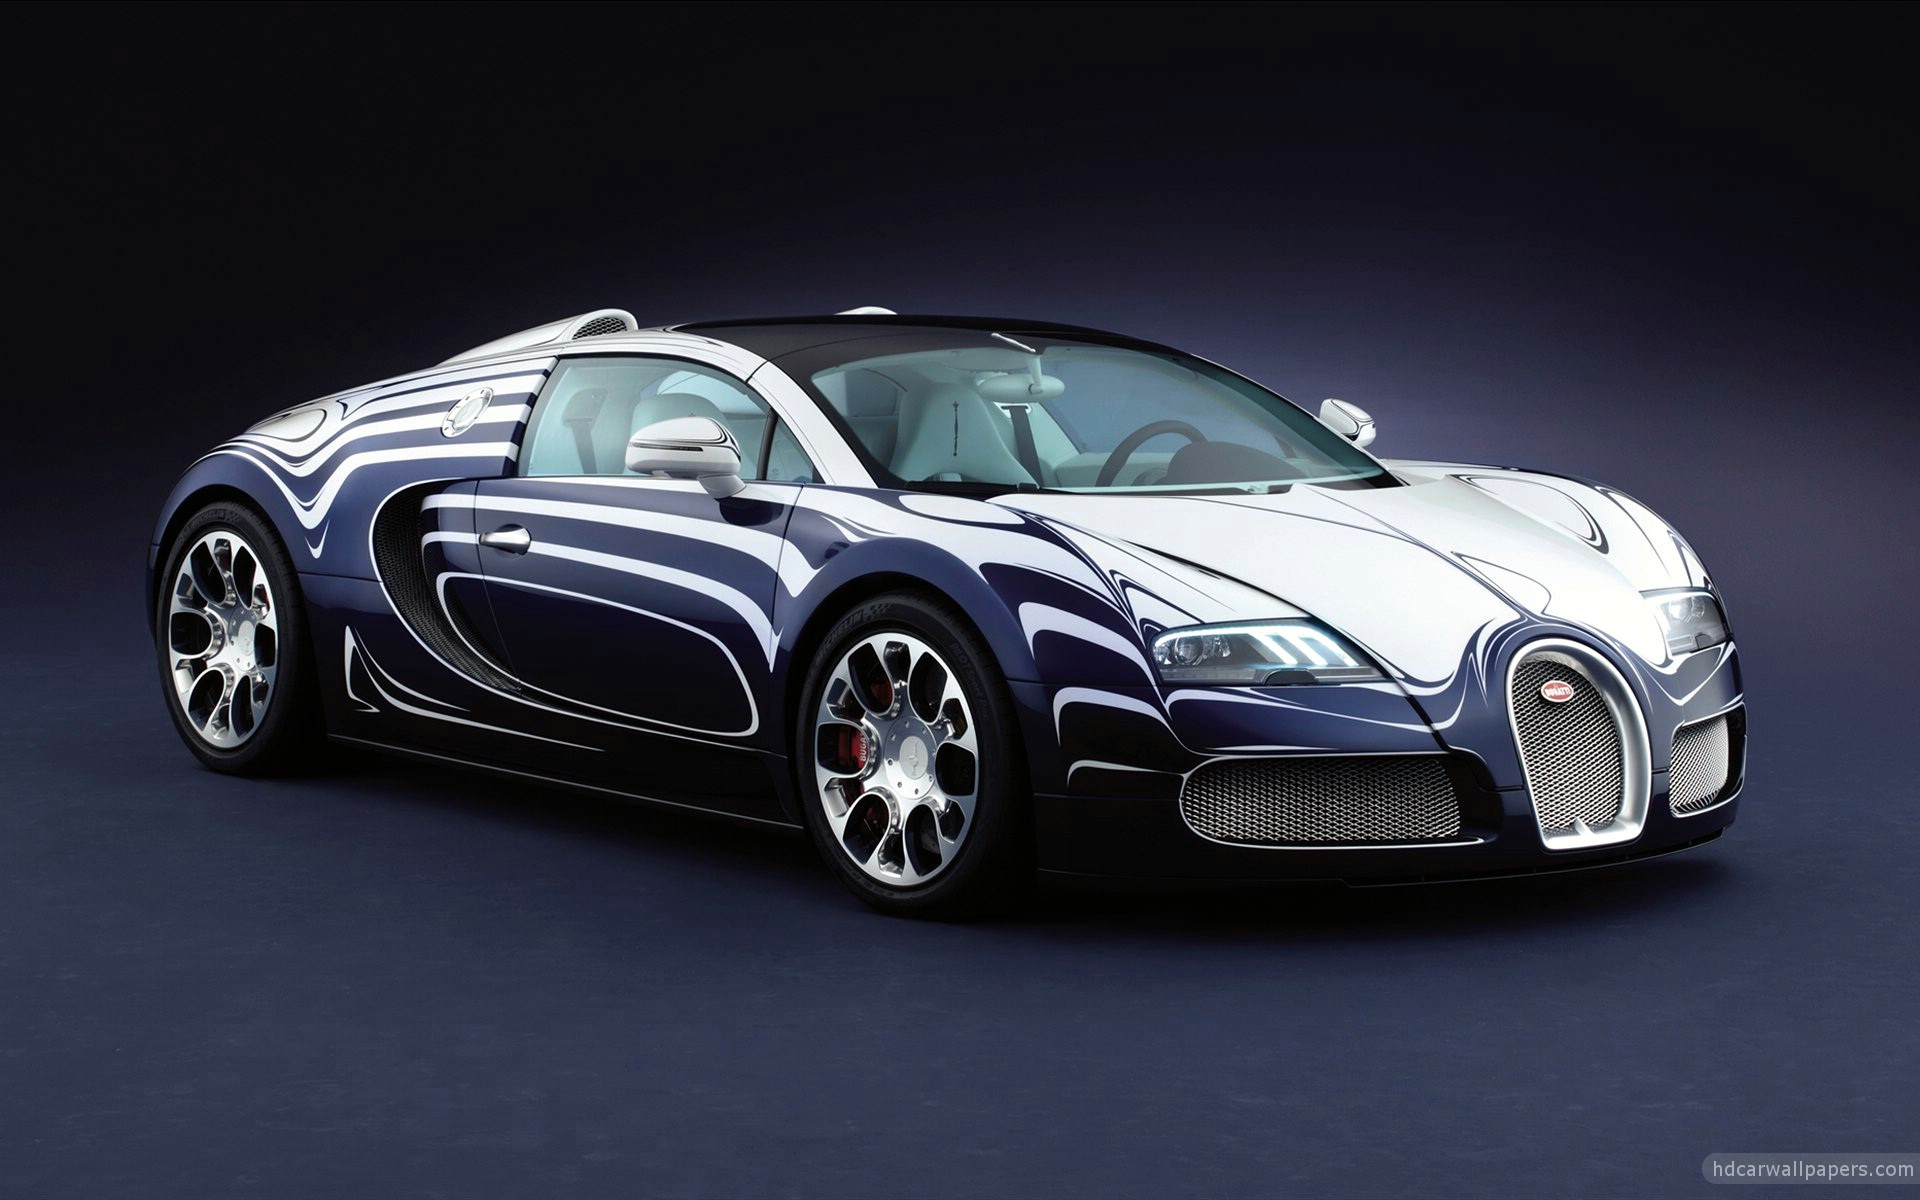 2011 bugatti veyron grand sport wallpaper hd car wallpapers id 2113. Black Bedroom Furniture Sets. Home Design Ideas